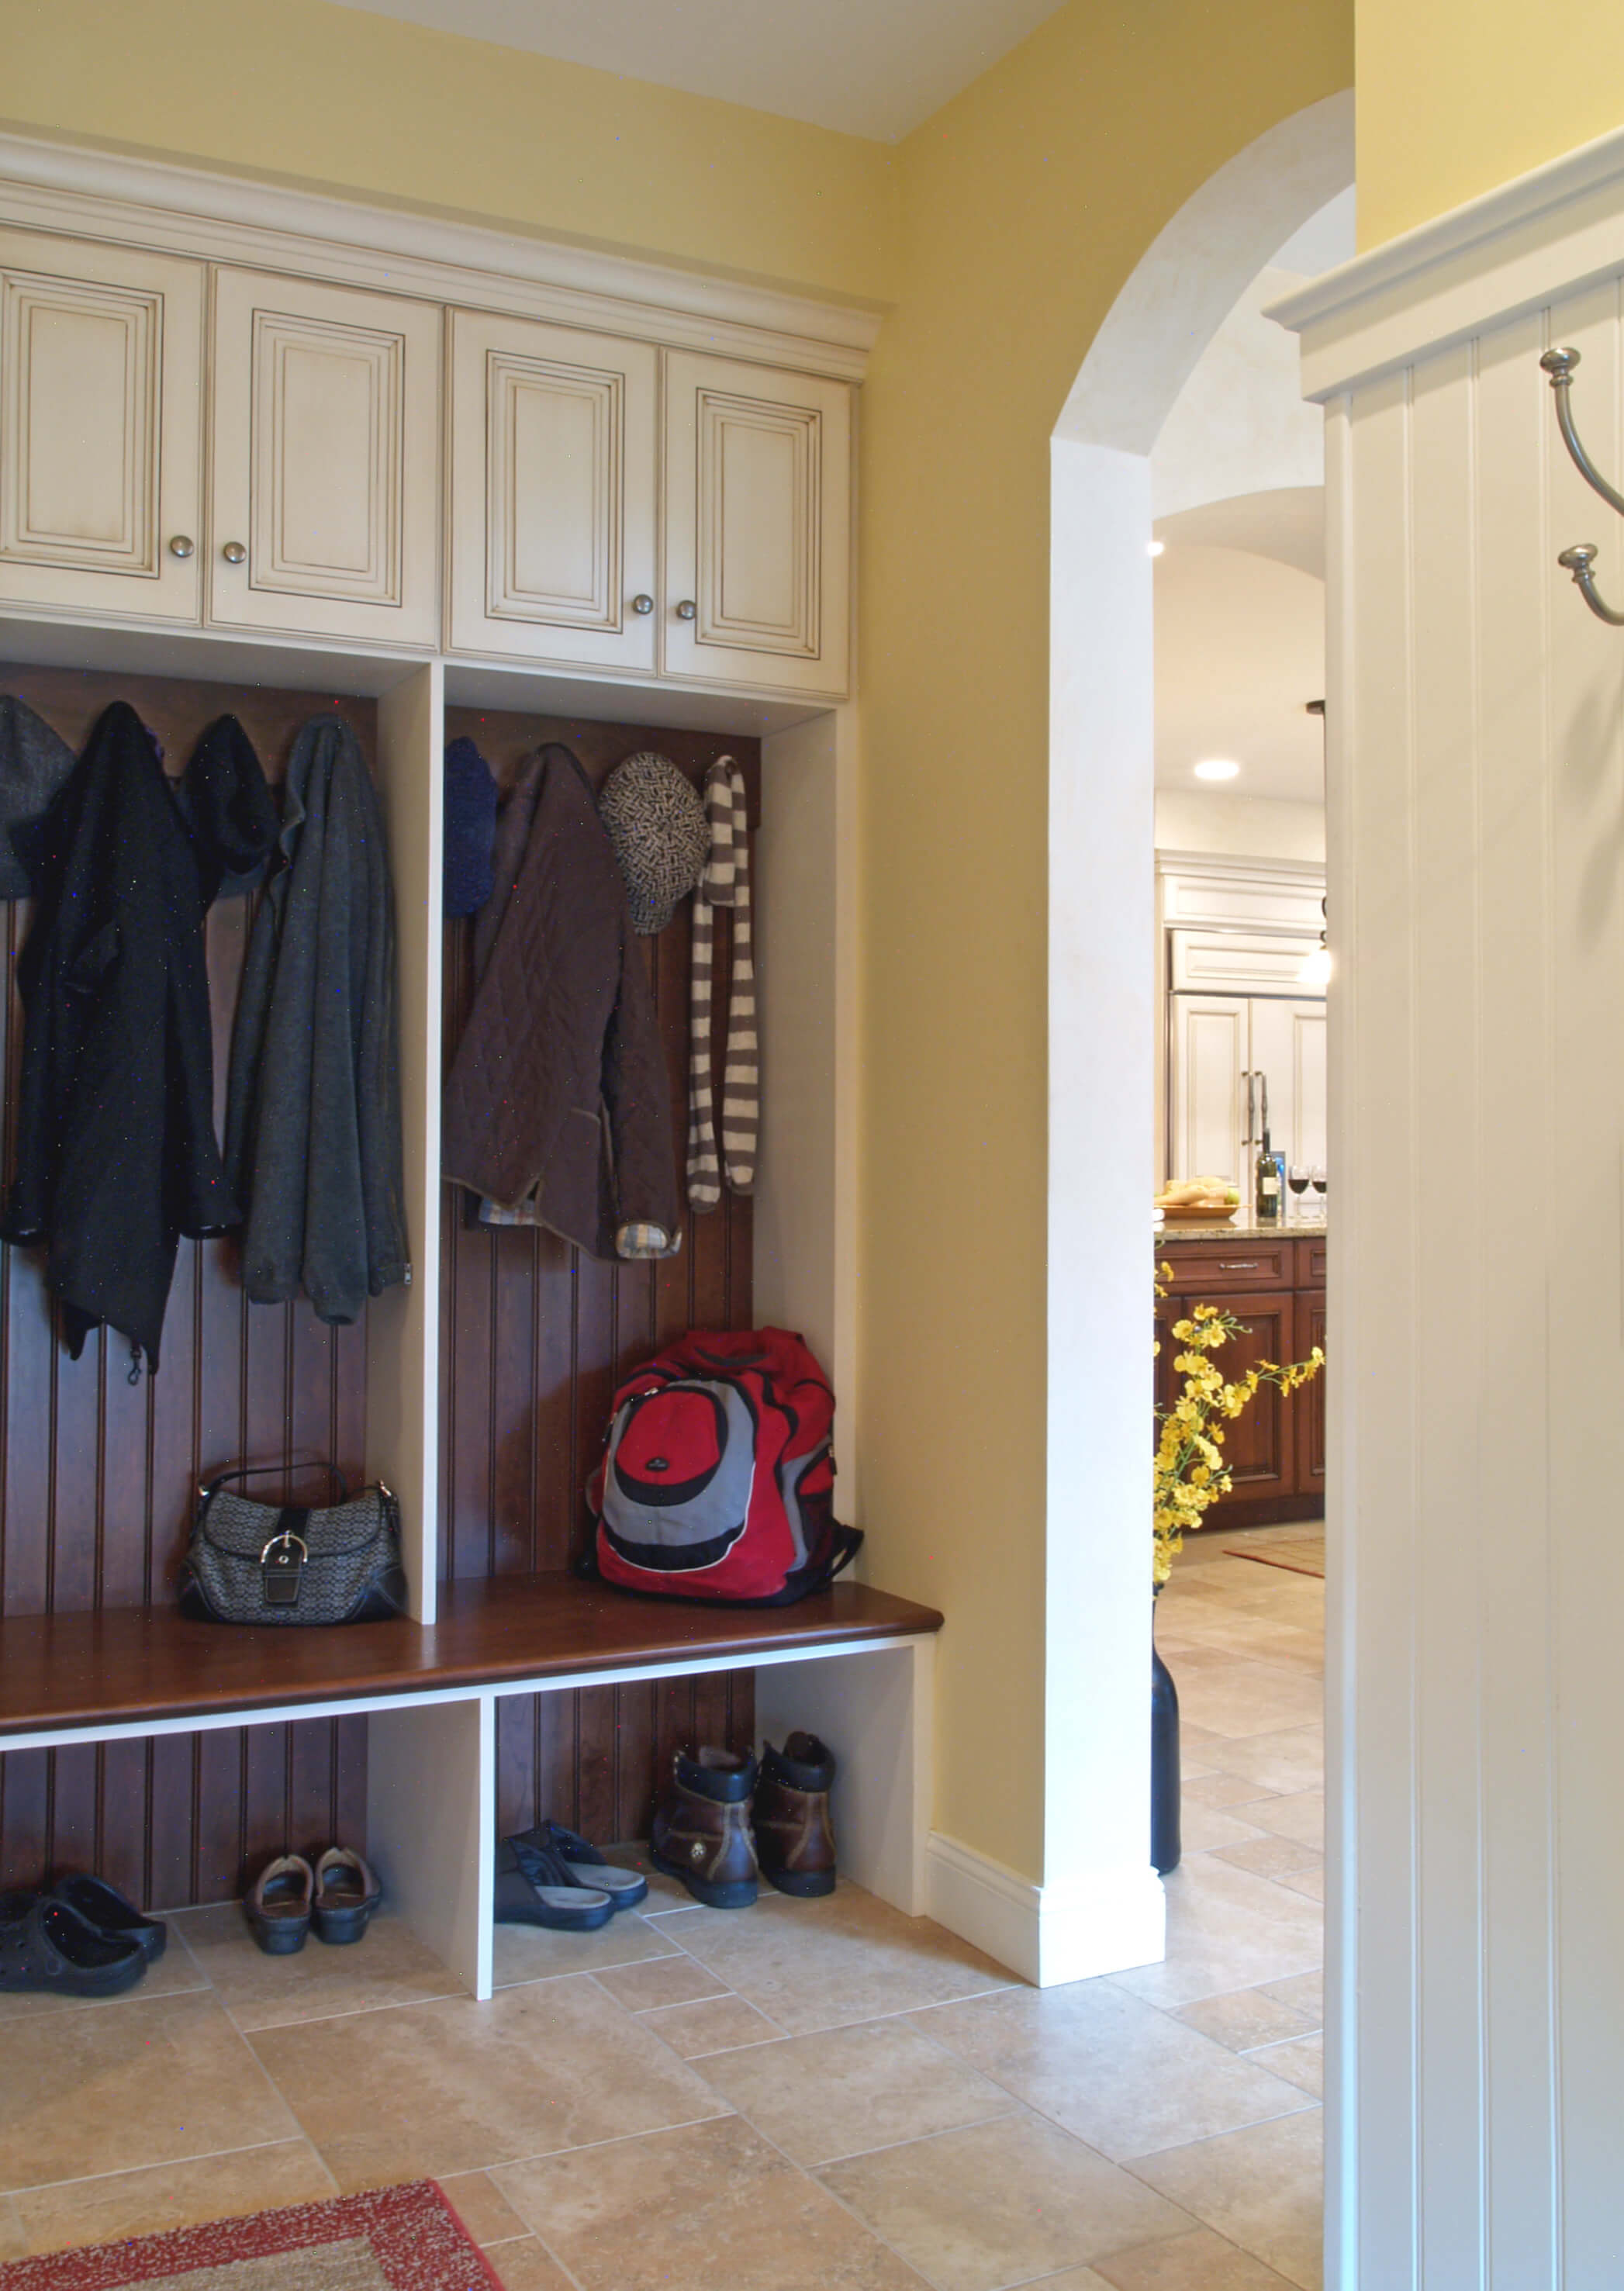 Mudroom Coat Storage : Superb mudroom entryway design ideas with benches